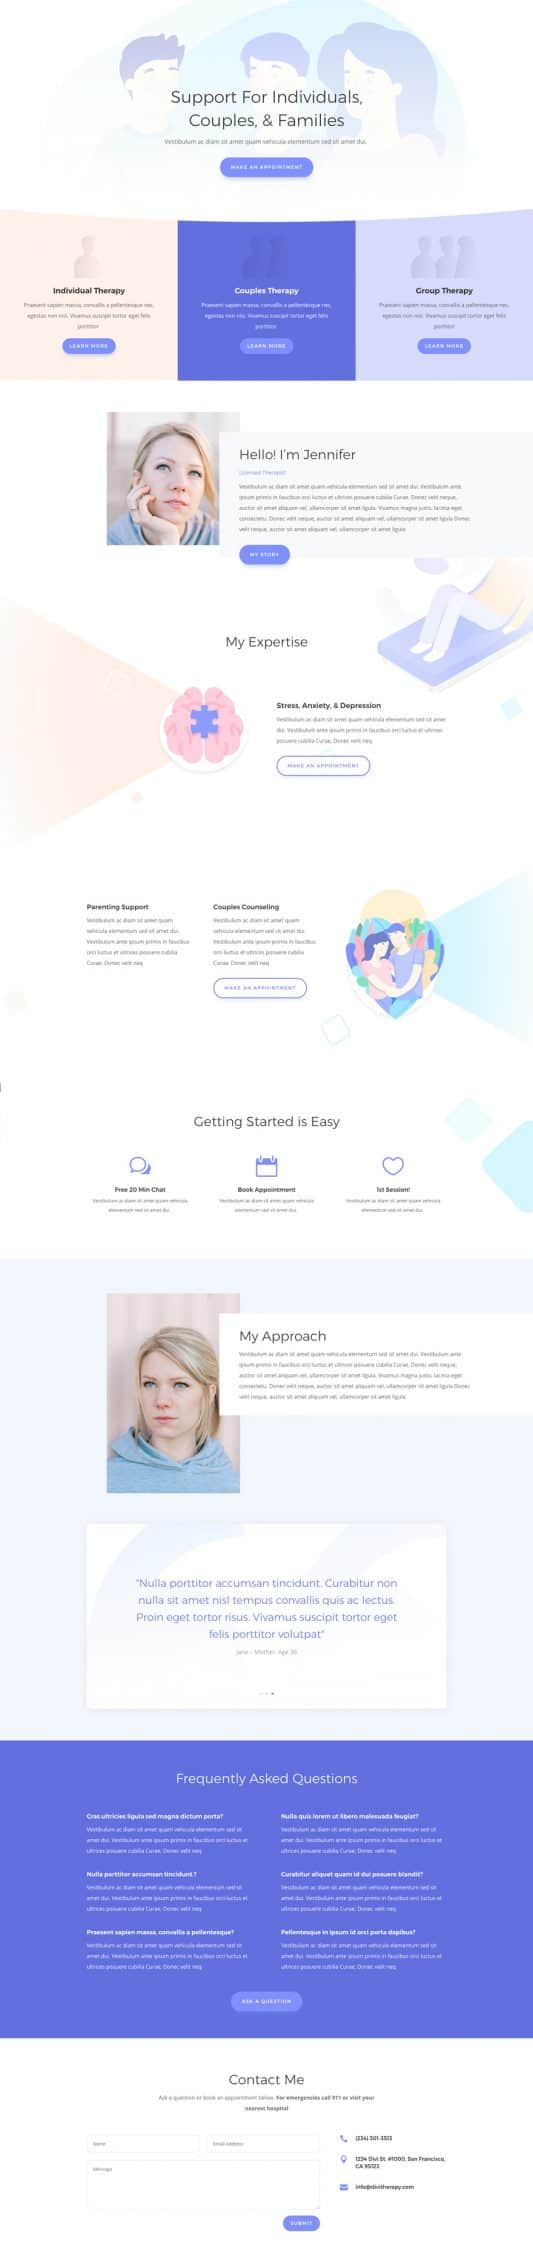 The Therapist Page Style: Homepage Design 1